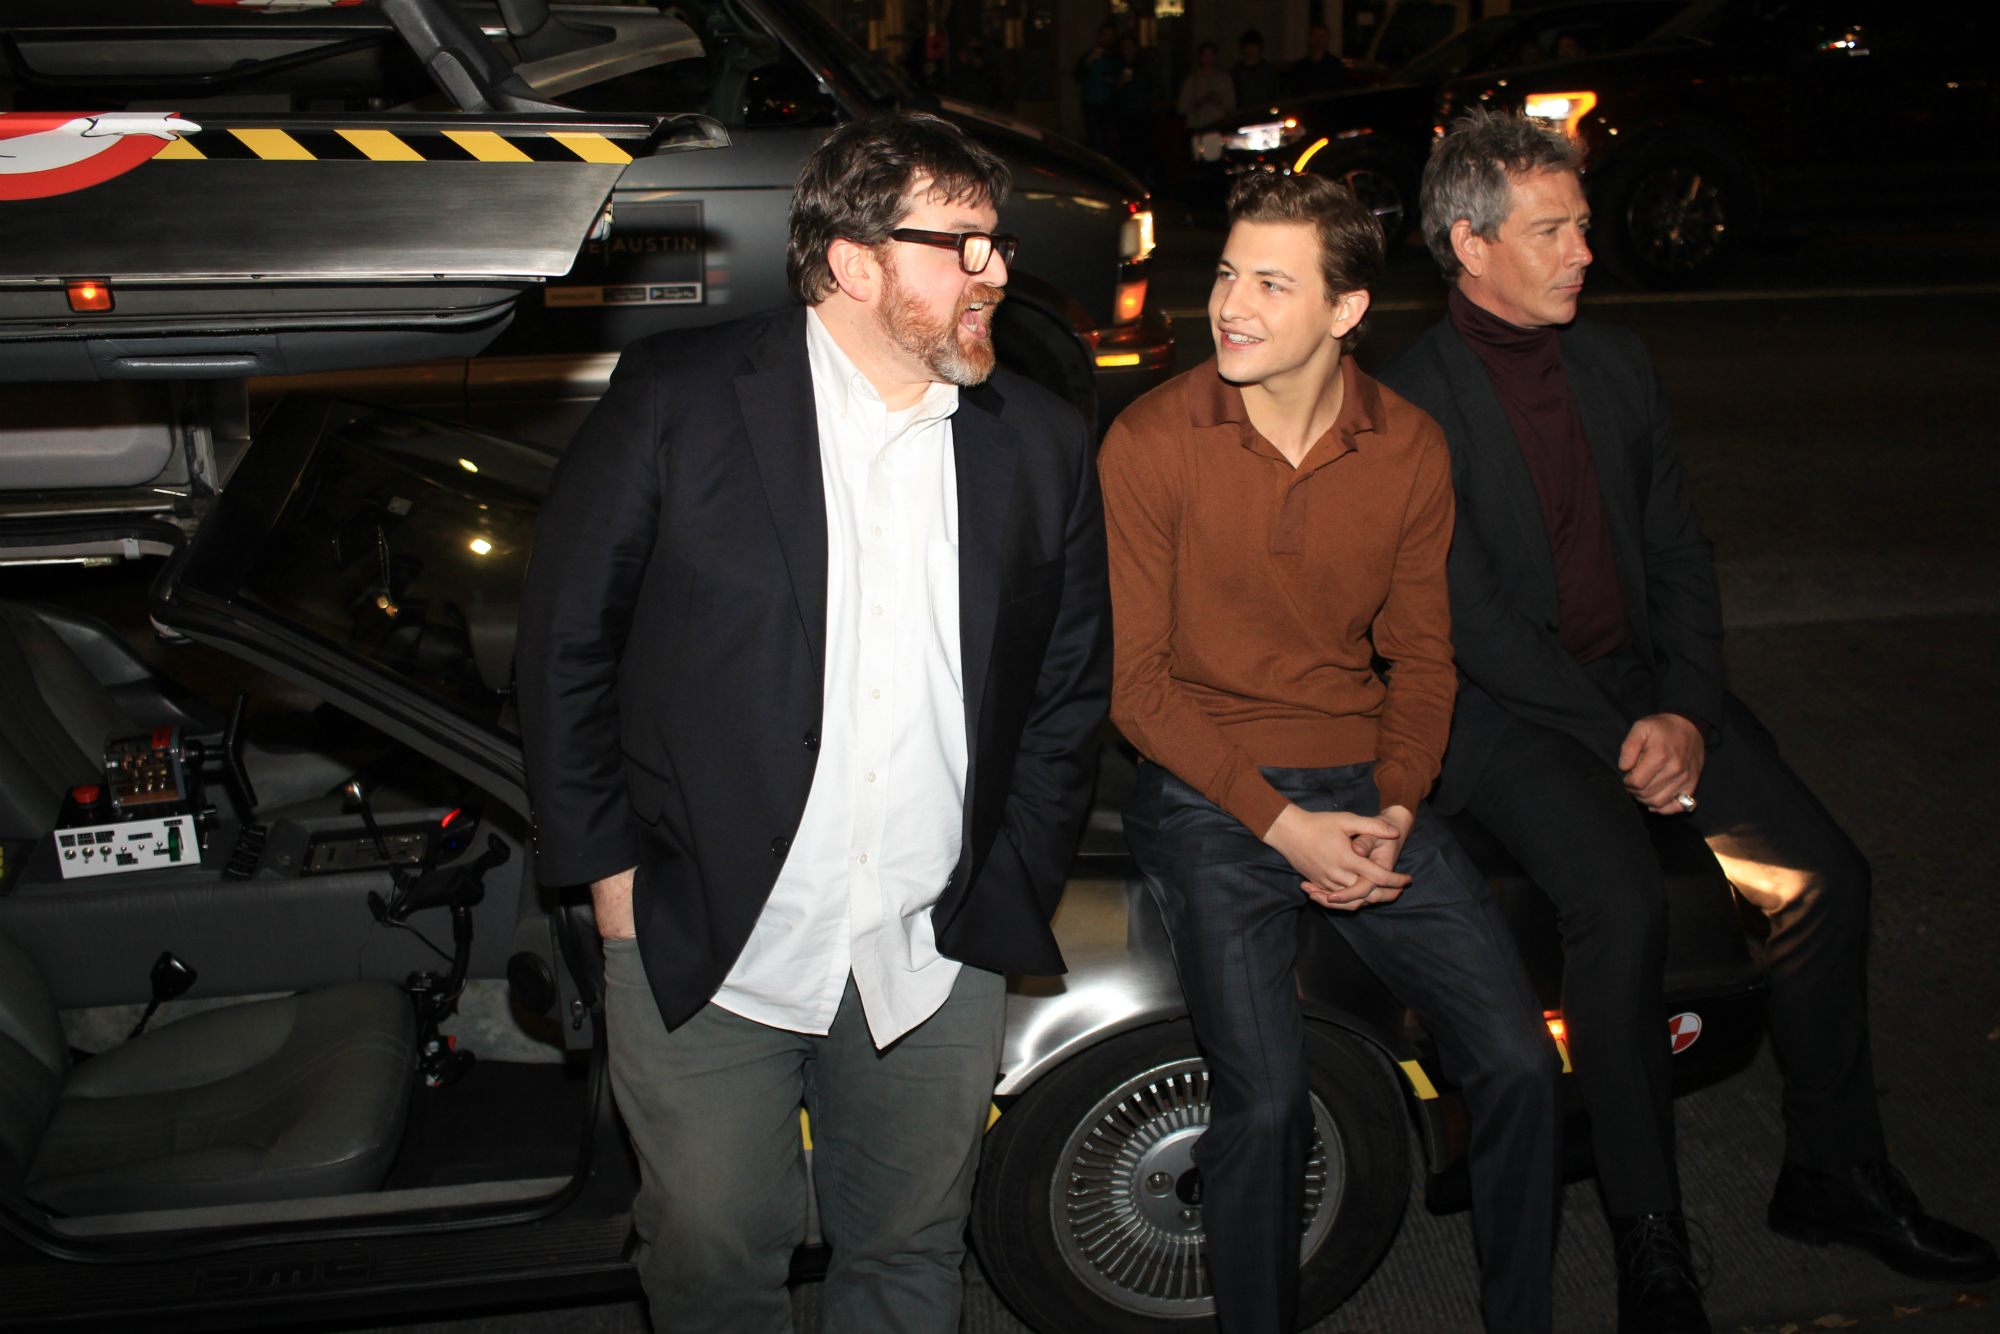 Ernest Cline, Tye Sheridan, and Ben Mendelsohn // Ready Player One, photo by Heather Kaplan